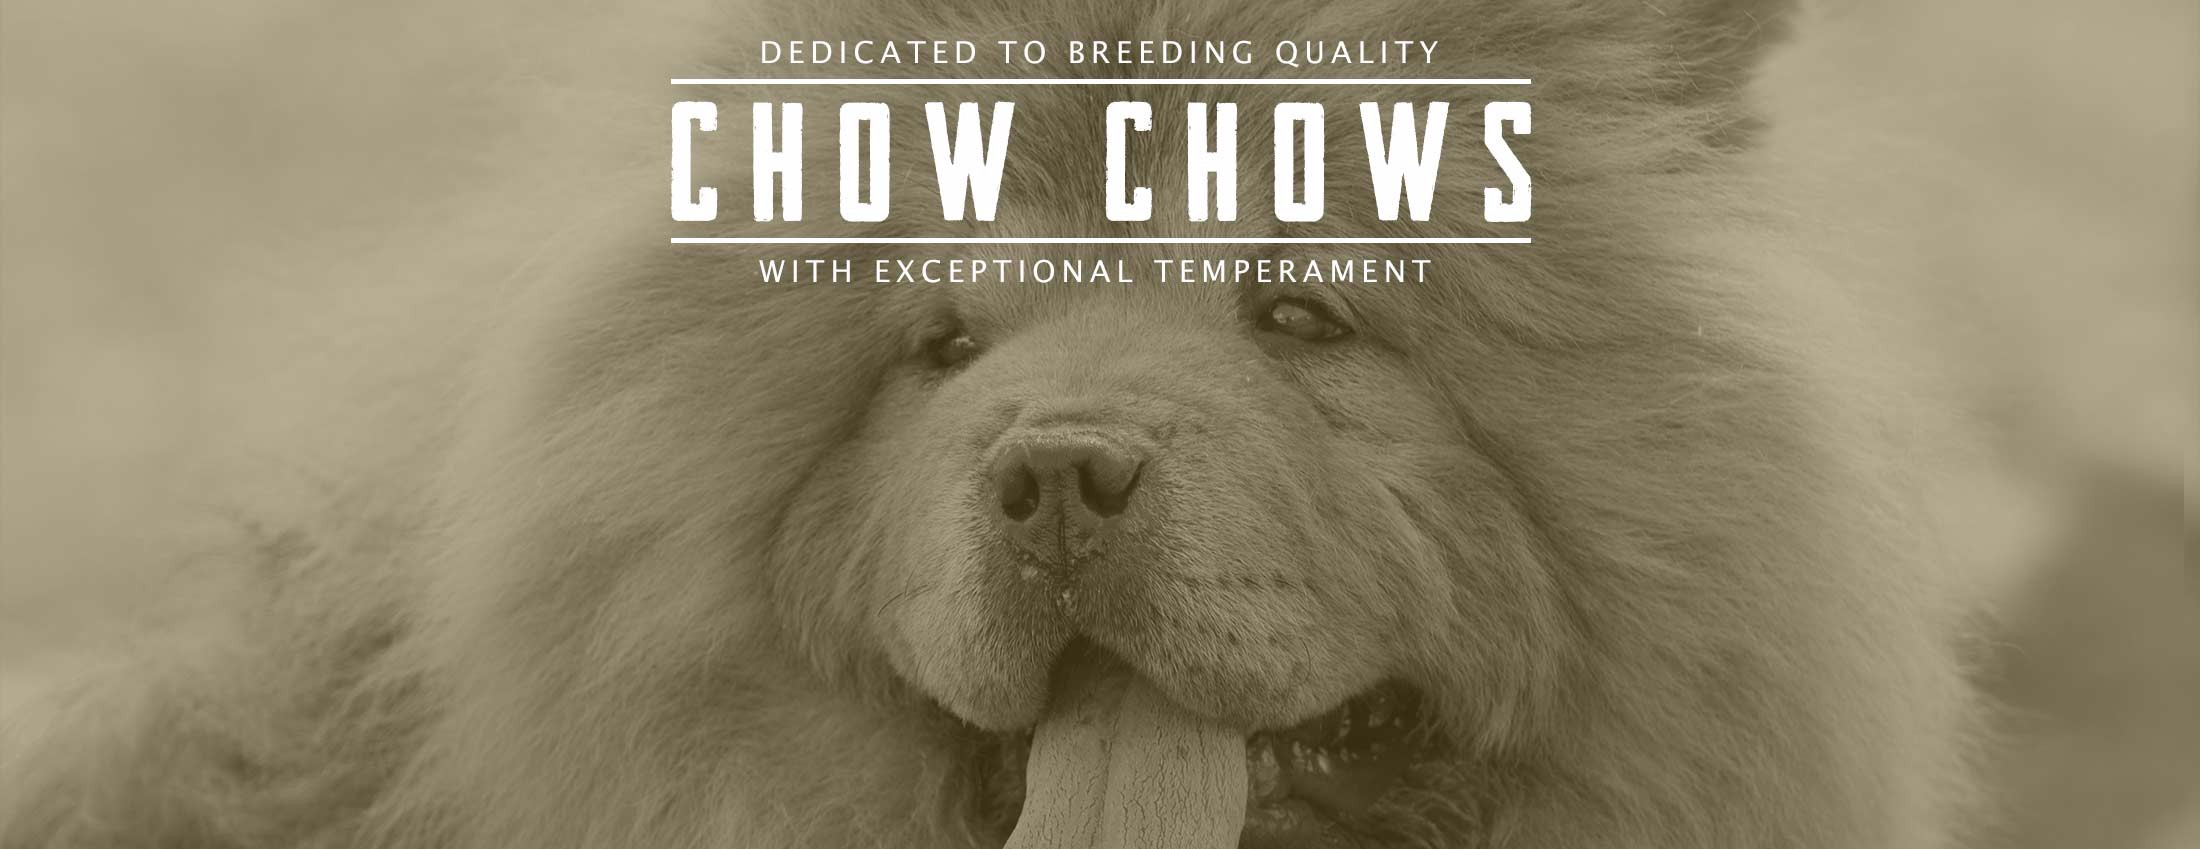 Dedicated to Breeding Quality Chow Chows with Exceptional